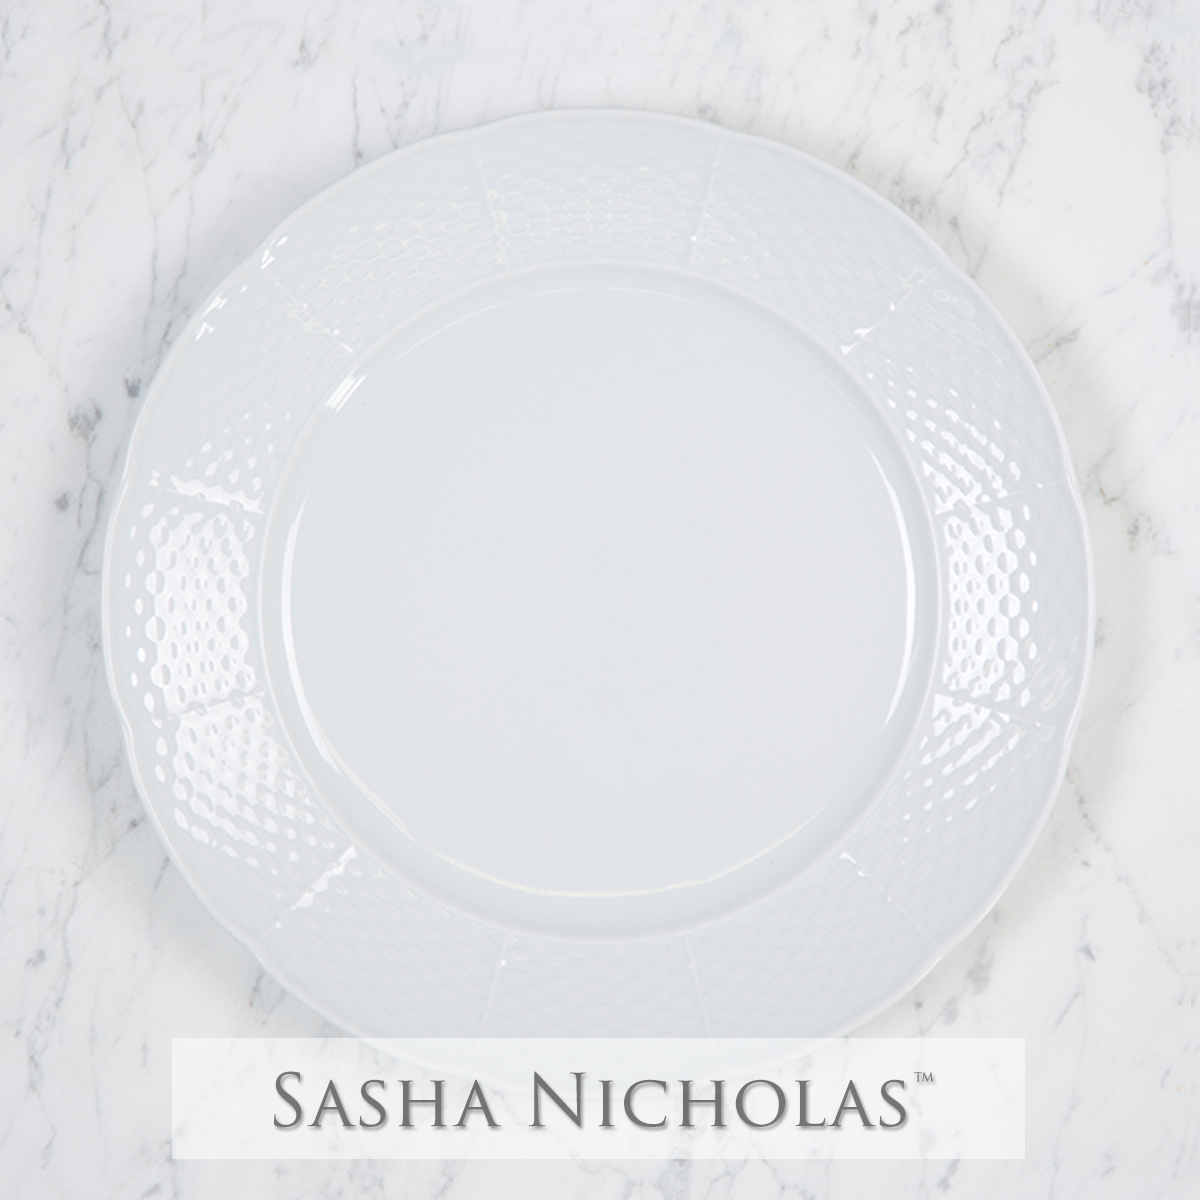 A beautiful addition to your dinnerware collection and to adorn your tablescapes with. It makes the perfect gift for your wedding registry and has the option to include an inscription on back. Choose from their signature font styles or use a custom monogram or crest of your choice! | Sasha NicholasåäÌÝå»s white porcelain weave dinner plate